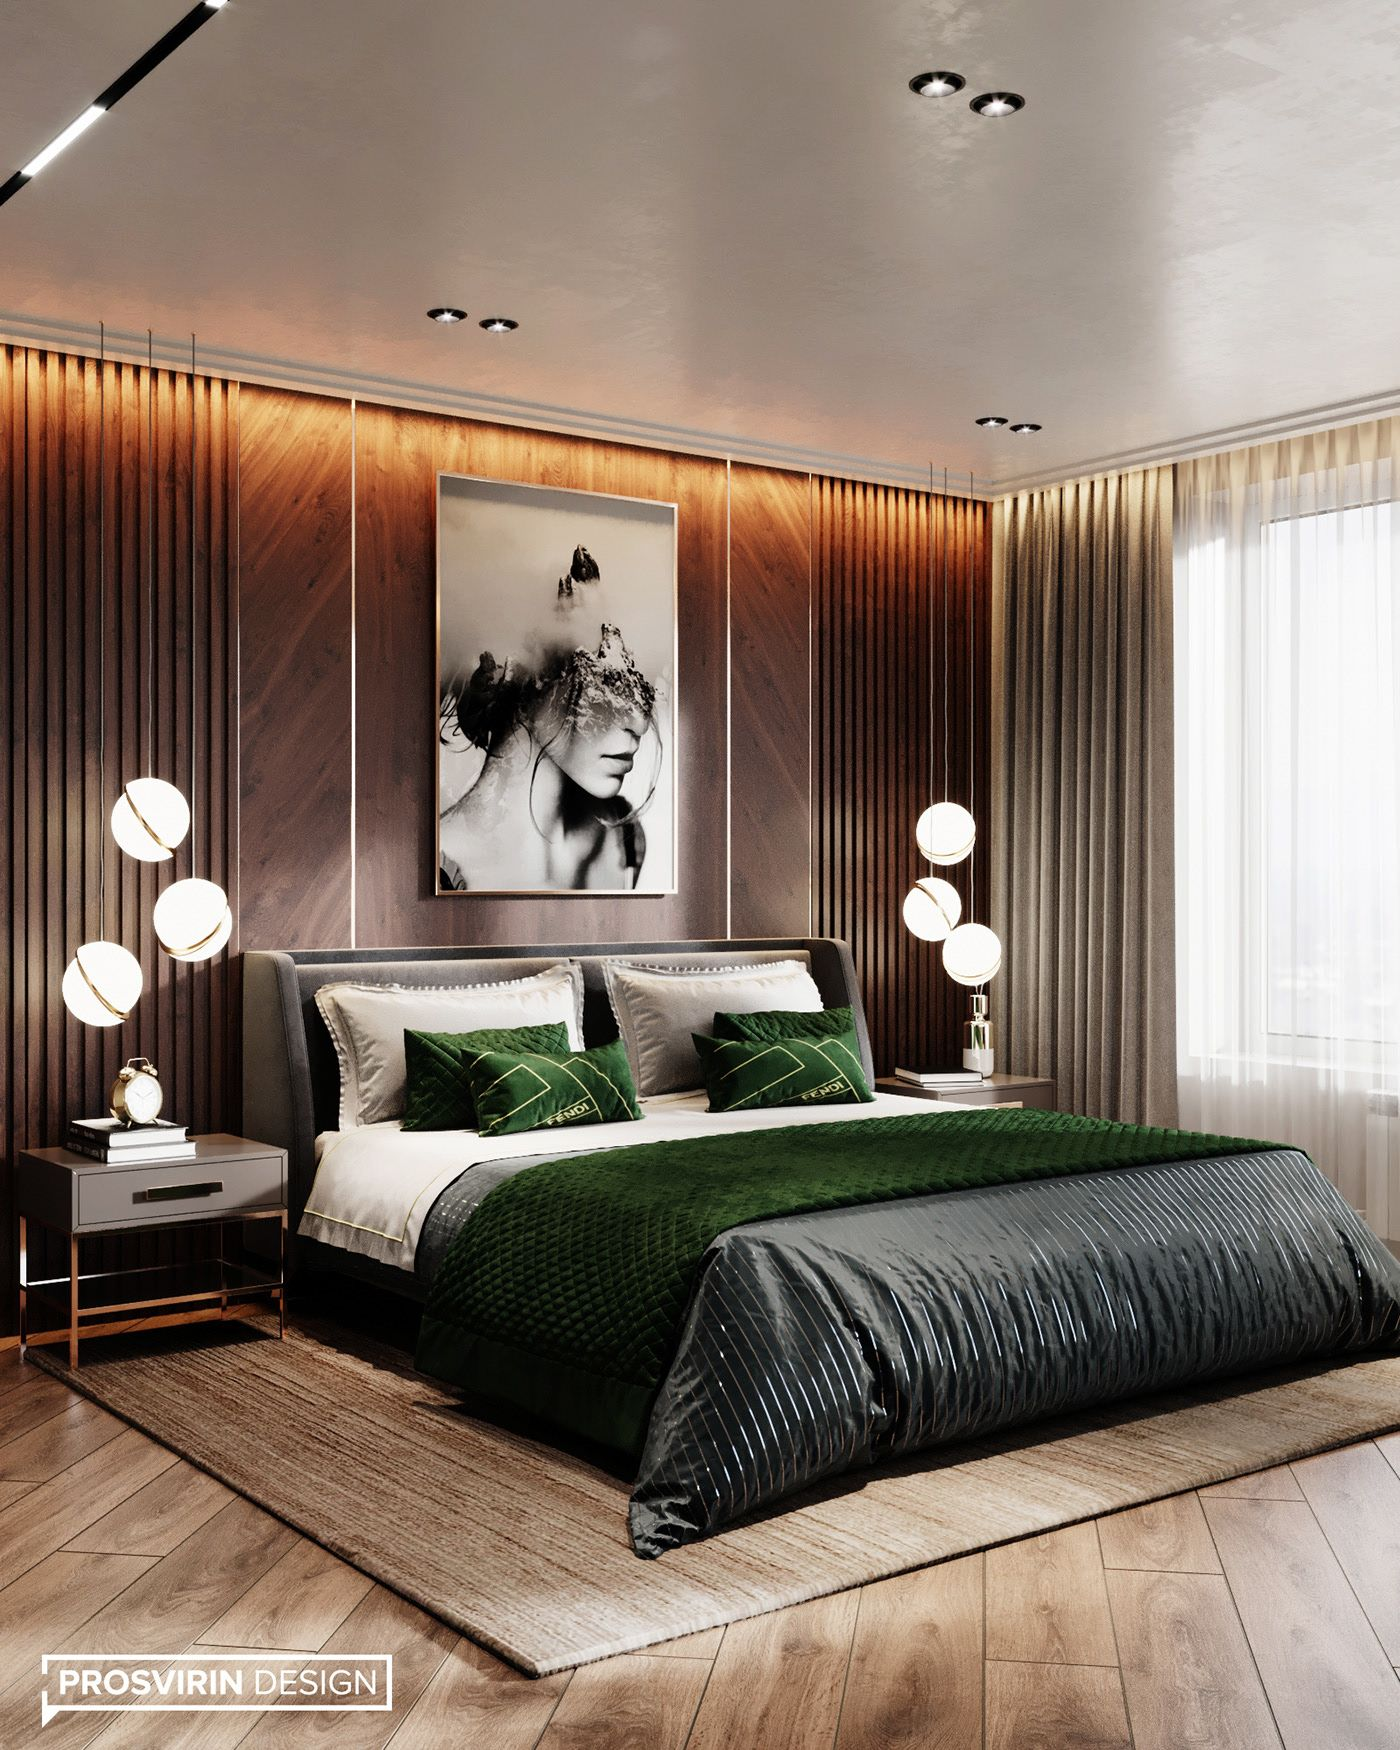 FULLLIFE on Behance in 2020 | Luxury bedroom master, Hotel ...